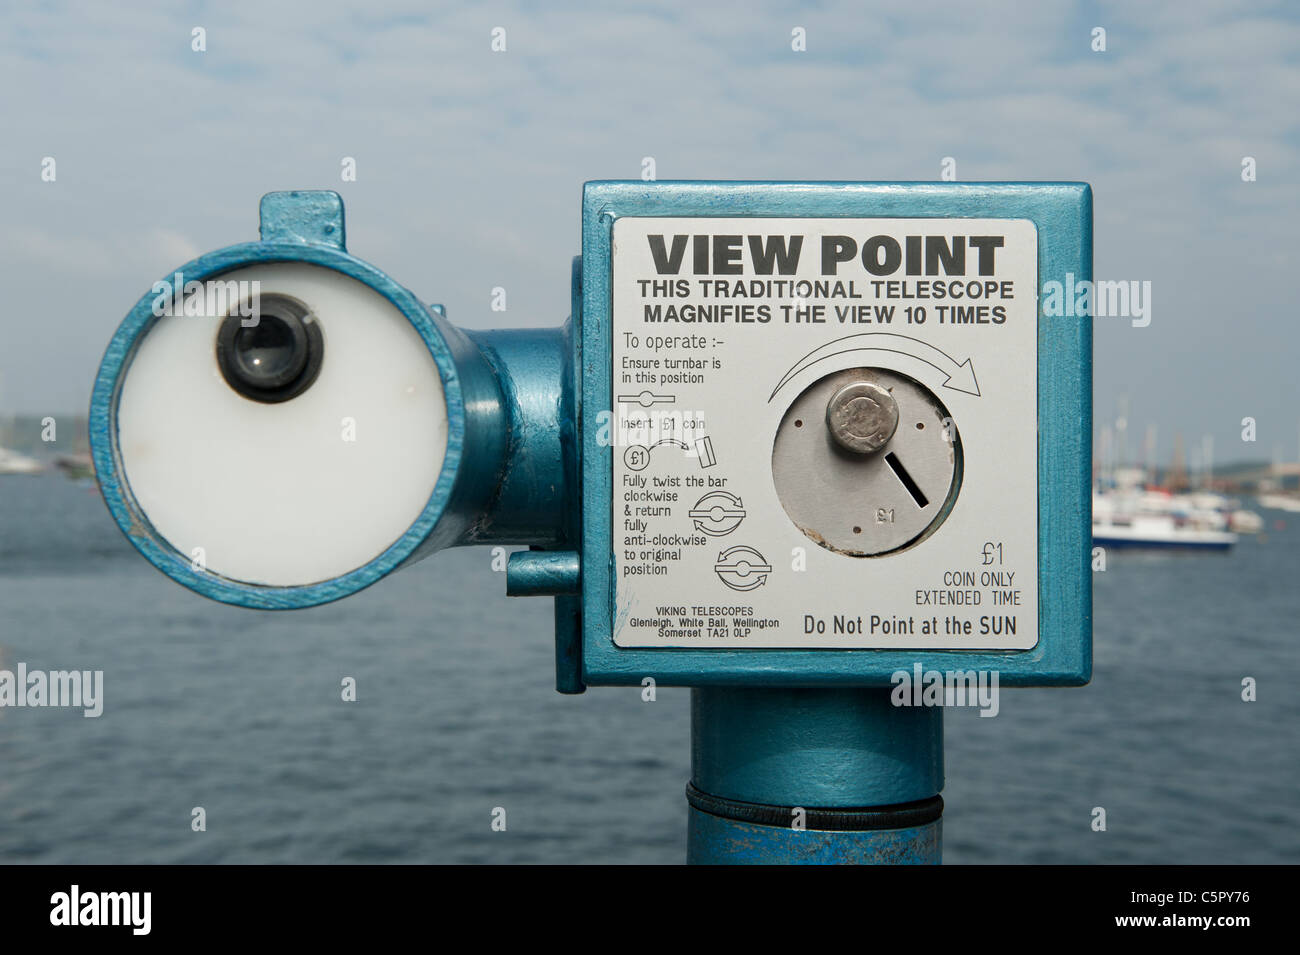 A public coin-operated telescope overlooking the the Packet Quay in Falmouth, Cornwall. - Stock Image